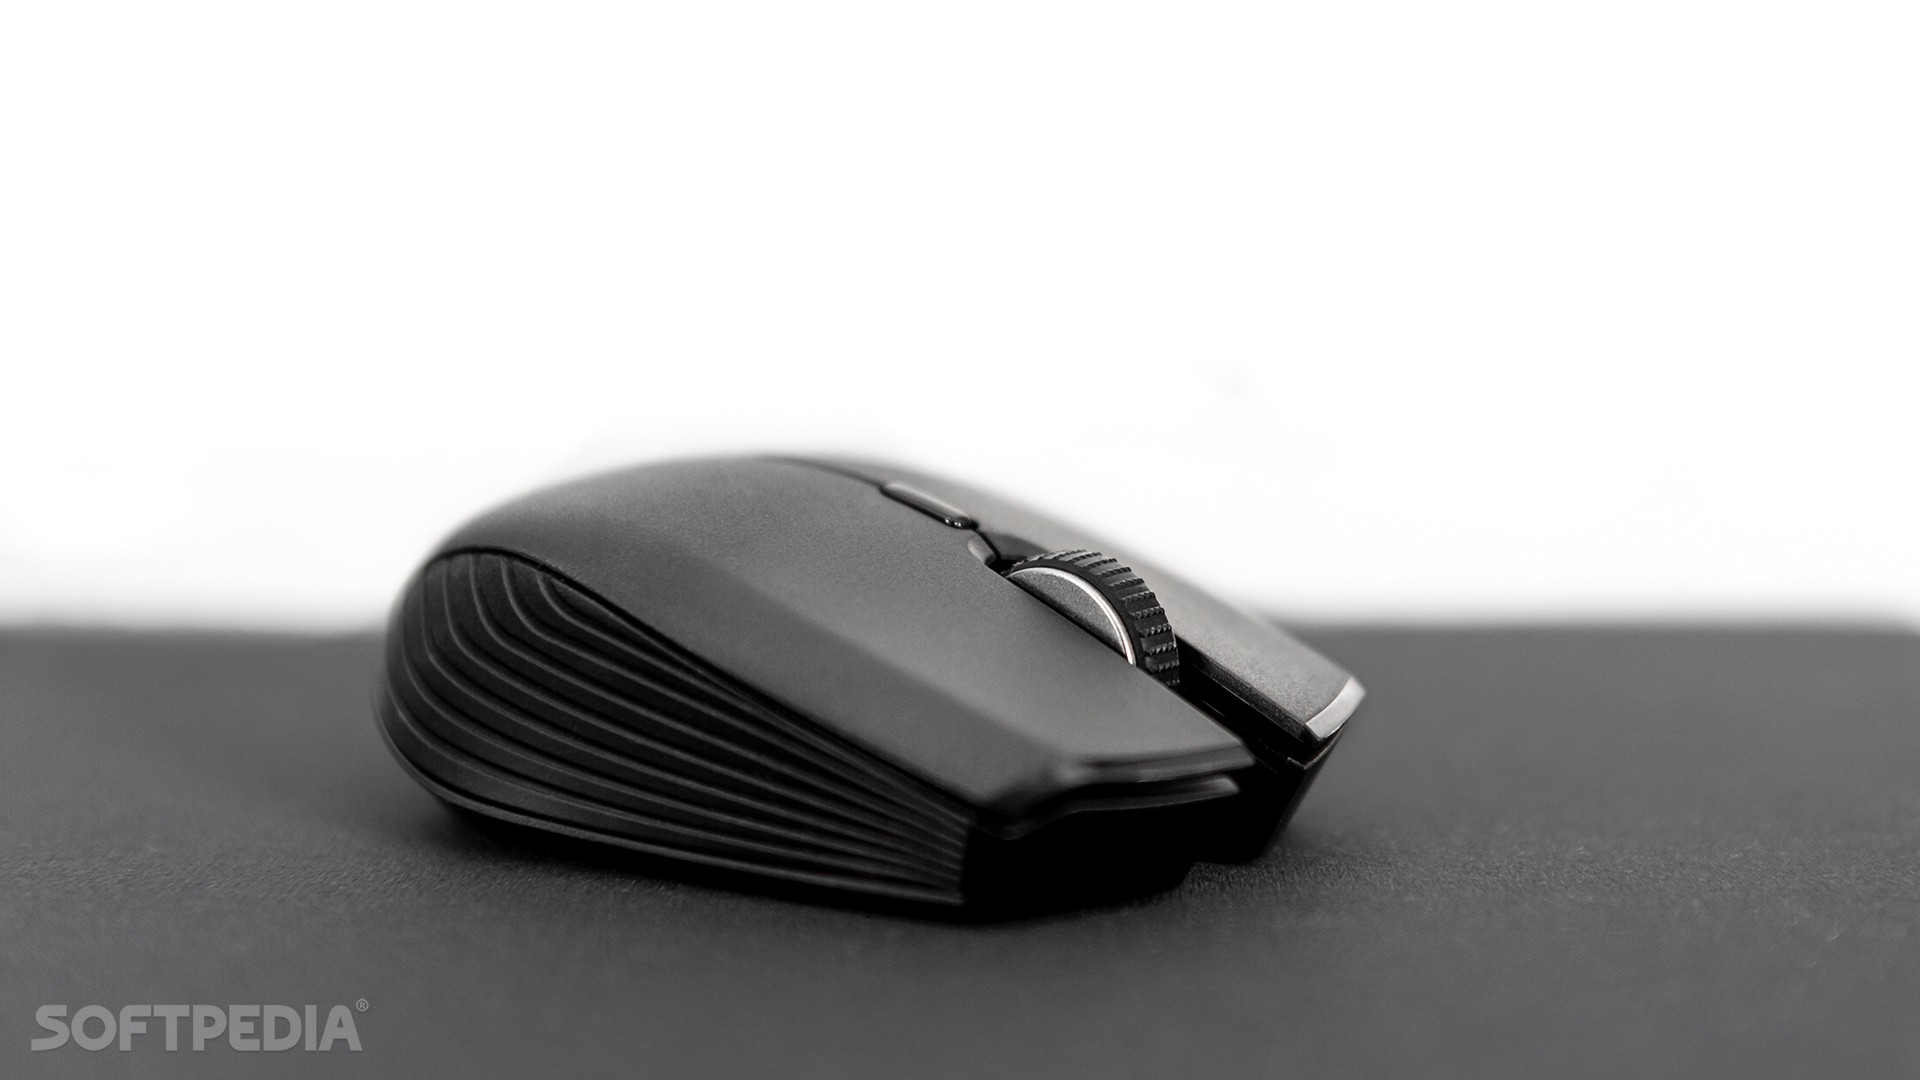 Razer Atheris Review - A Gaming Mouse Fit for Laptops